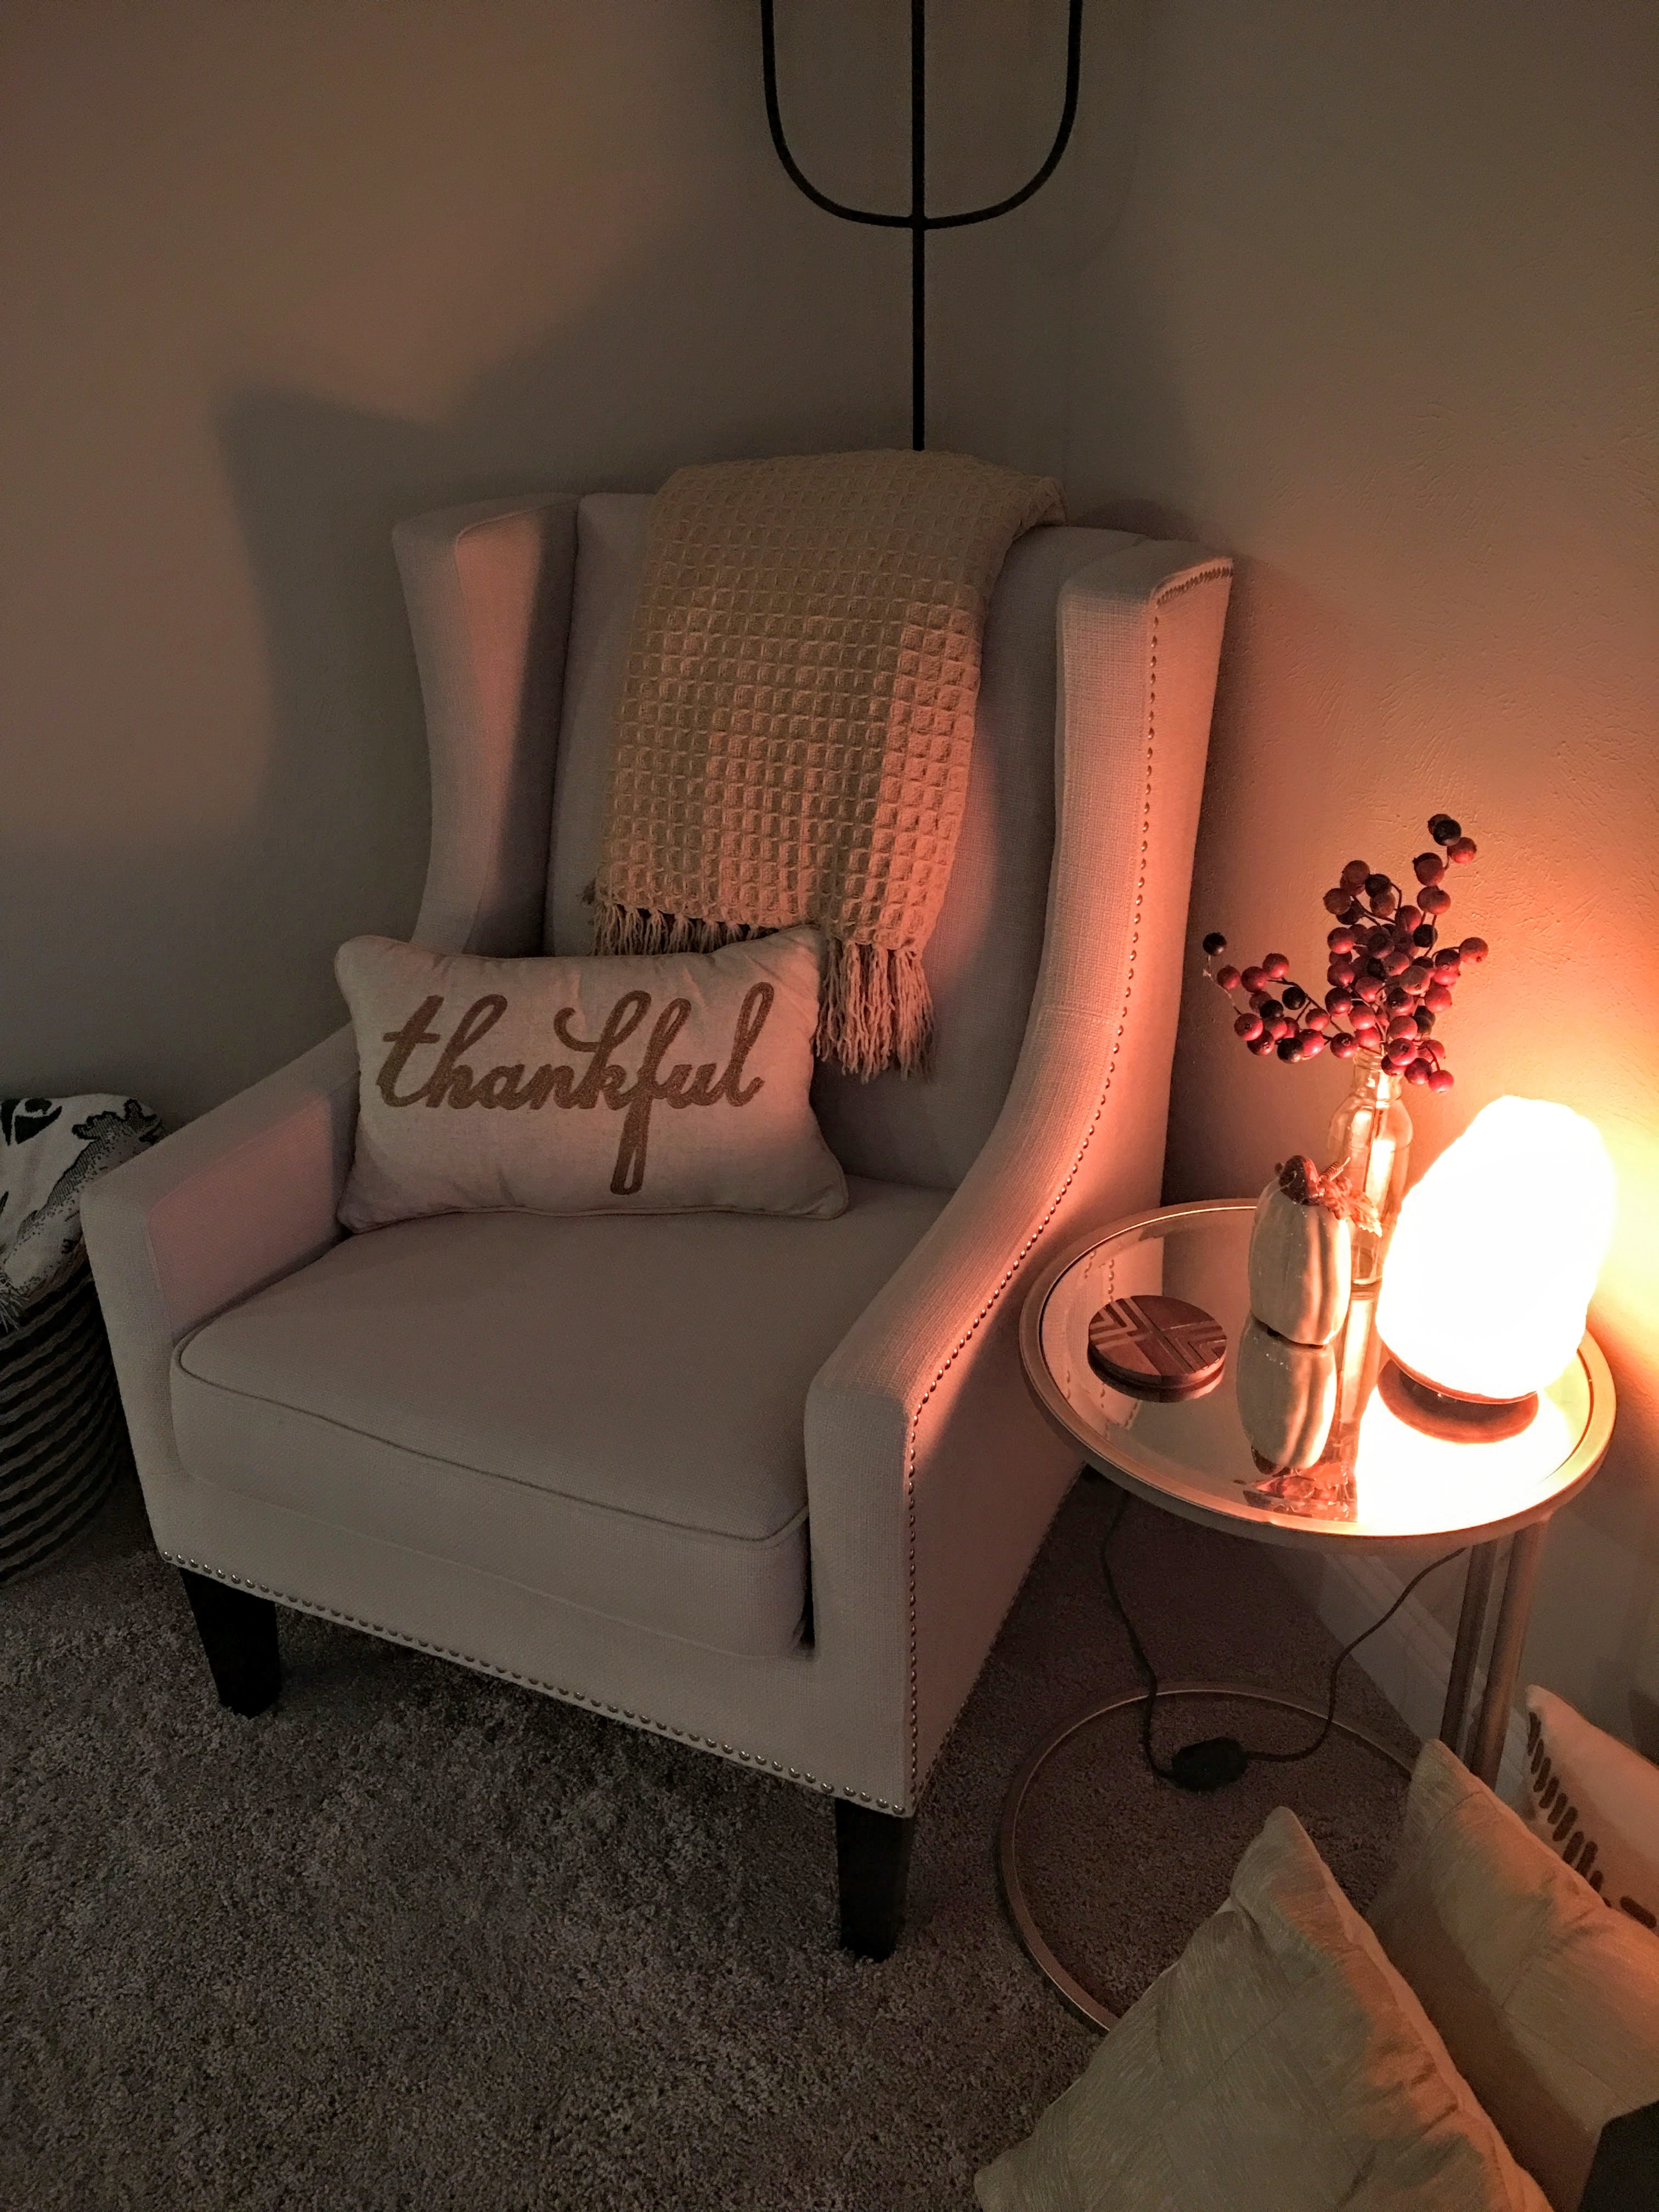 Salt lamp as a marvelous addition to a space decorated in beige tones